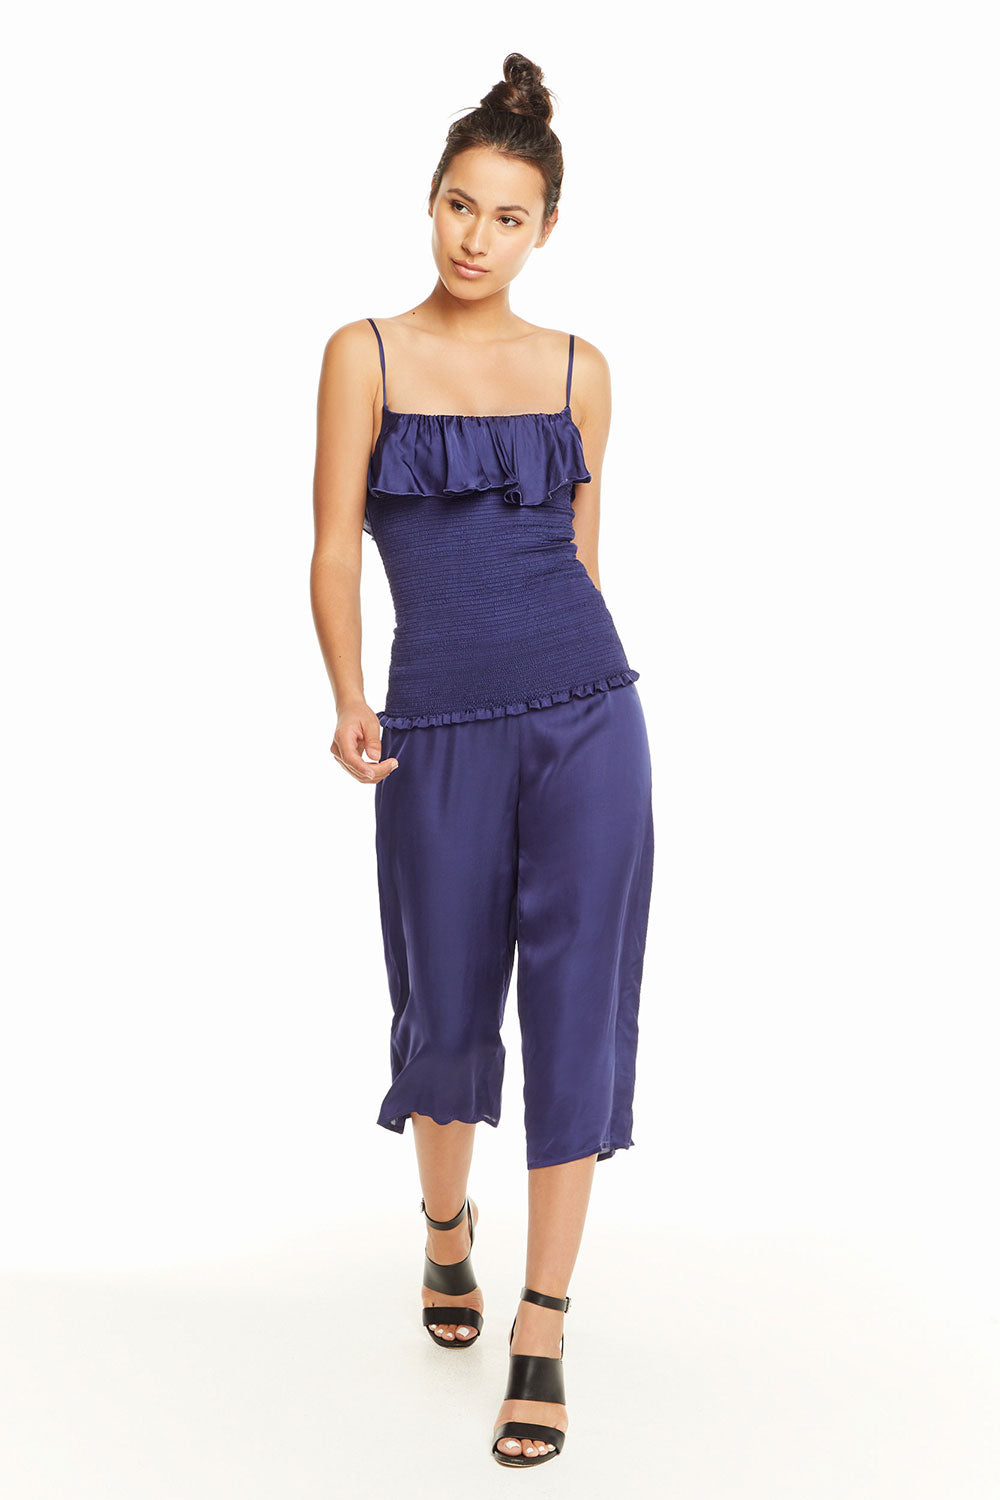 Silky Basics Wide Leg Zip Back Trouser, WOMENS, chaserbrand.com,chaser clothing,chaser apparel,chaser los angeles